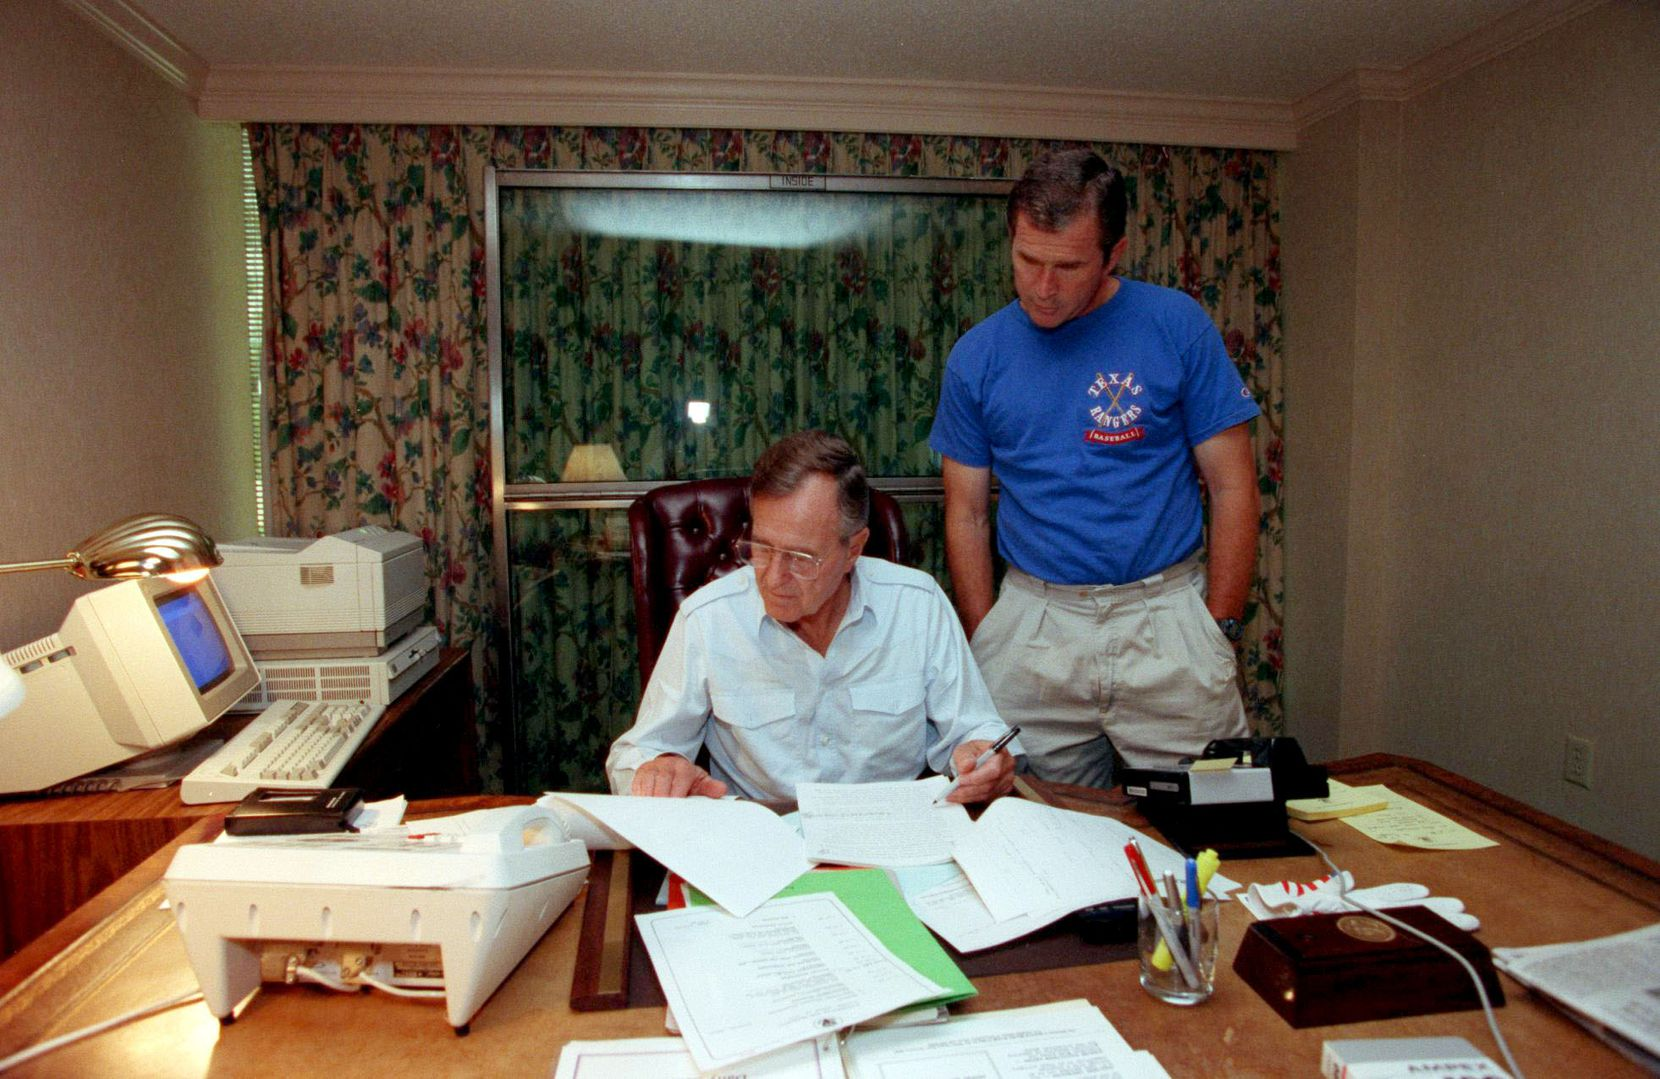 1992: George W. Bush watches at the Houstonian Hotel as his father, President George H. W. Bush, works on his speech to be delivered to the Republican National Convention in Houston. The elder Bush was running for re-election.